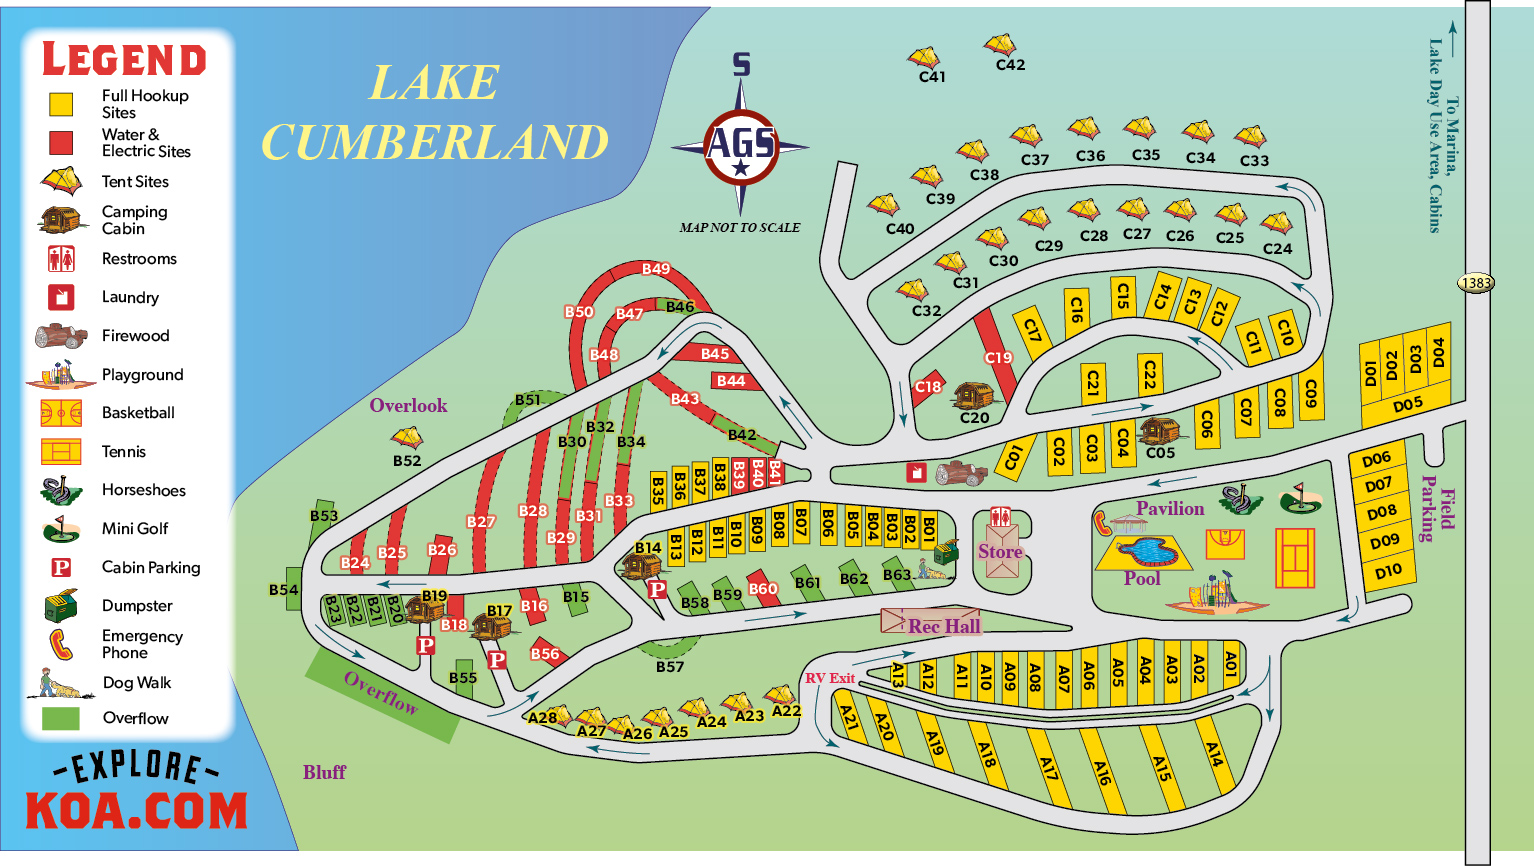 Russell Springs Kentucky Campground Russell Springs Koa